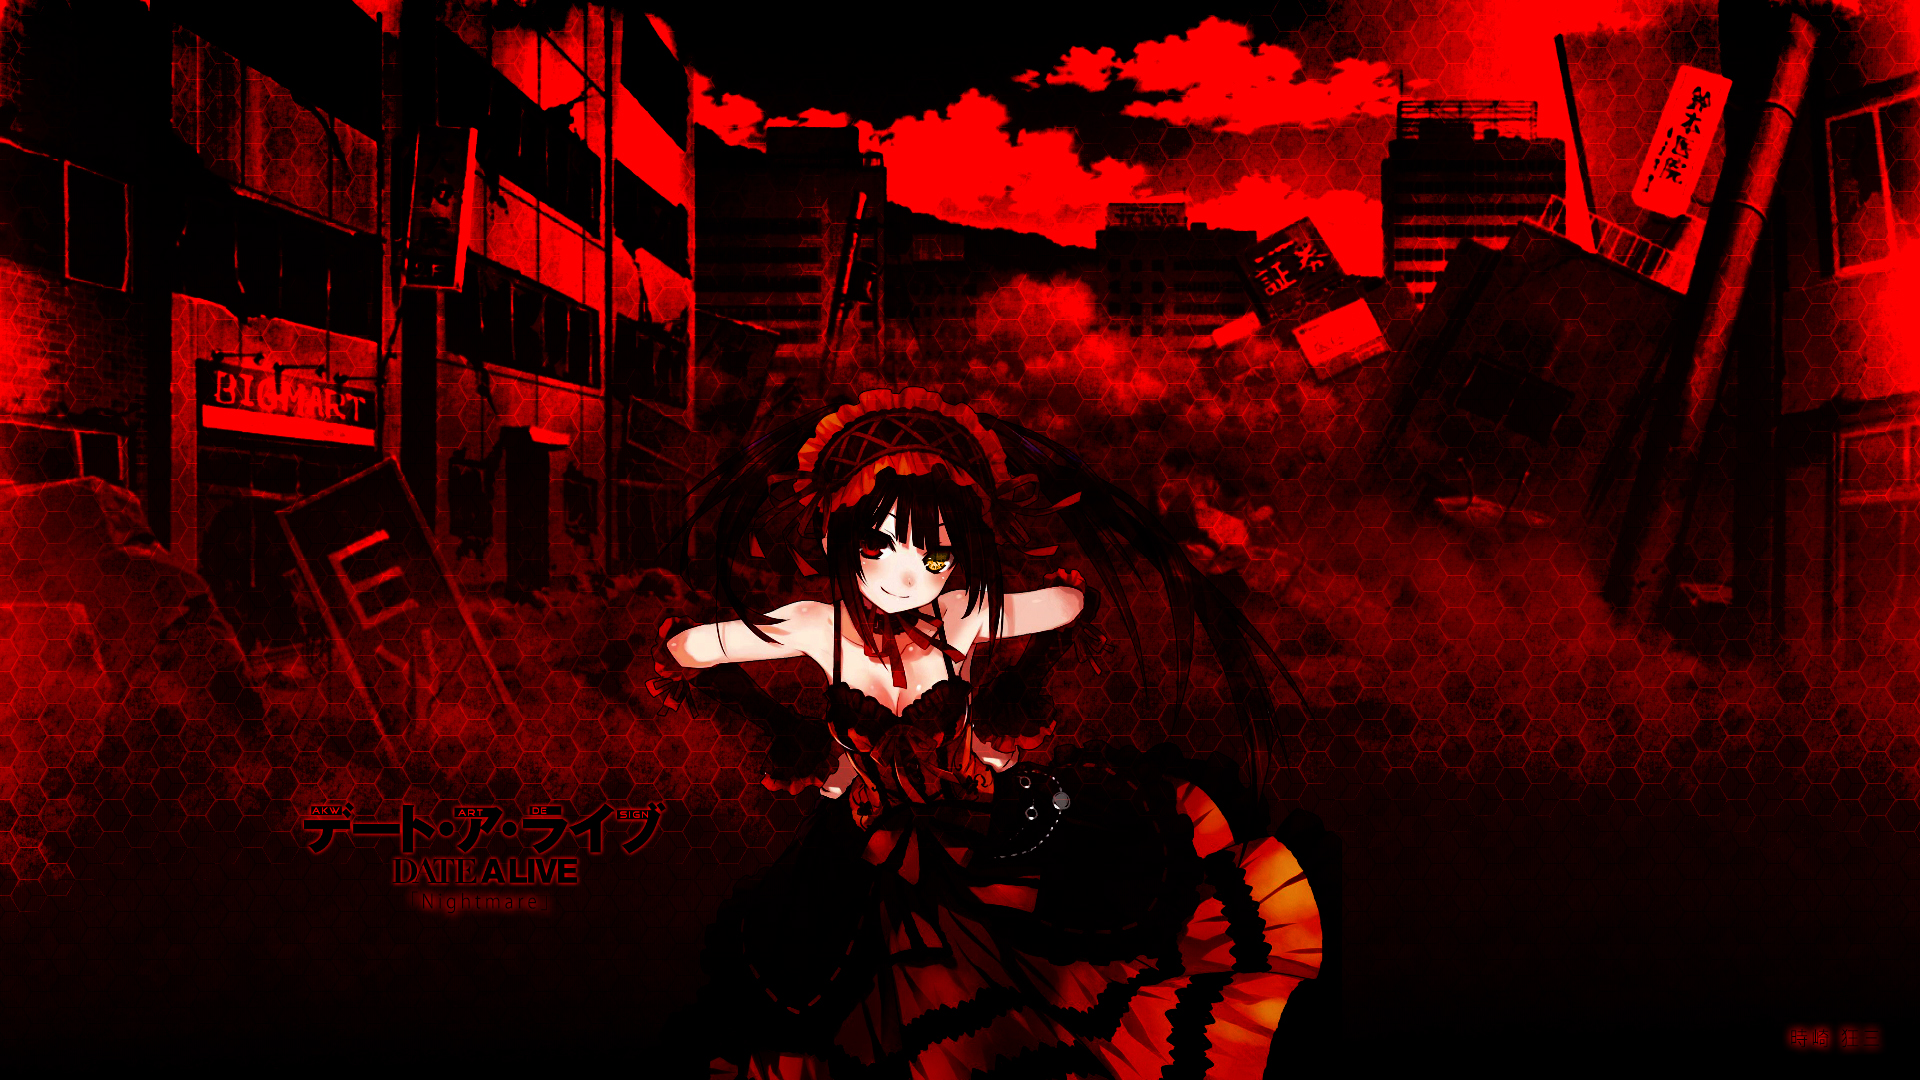 Download Wallpaper From Anime Date A Live With Tags Windows 8 Girls